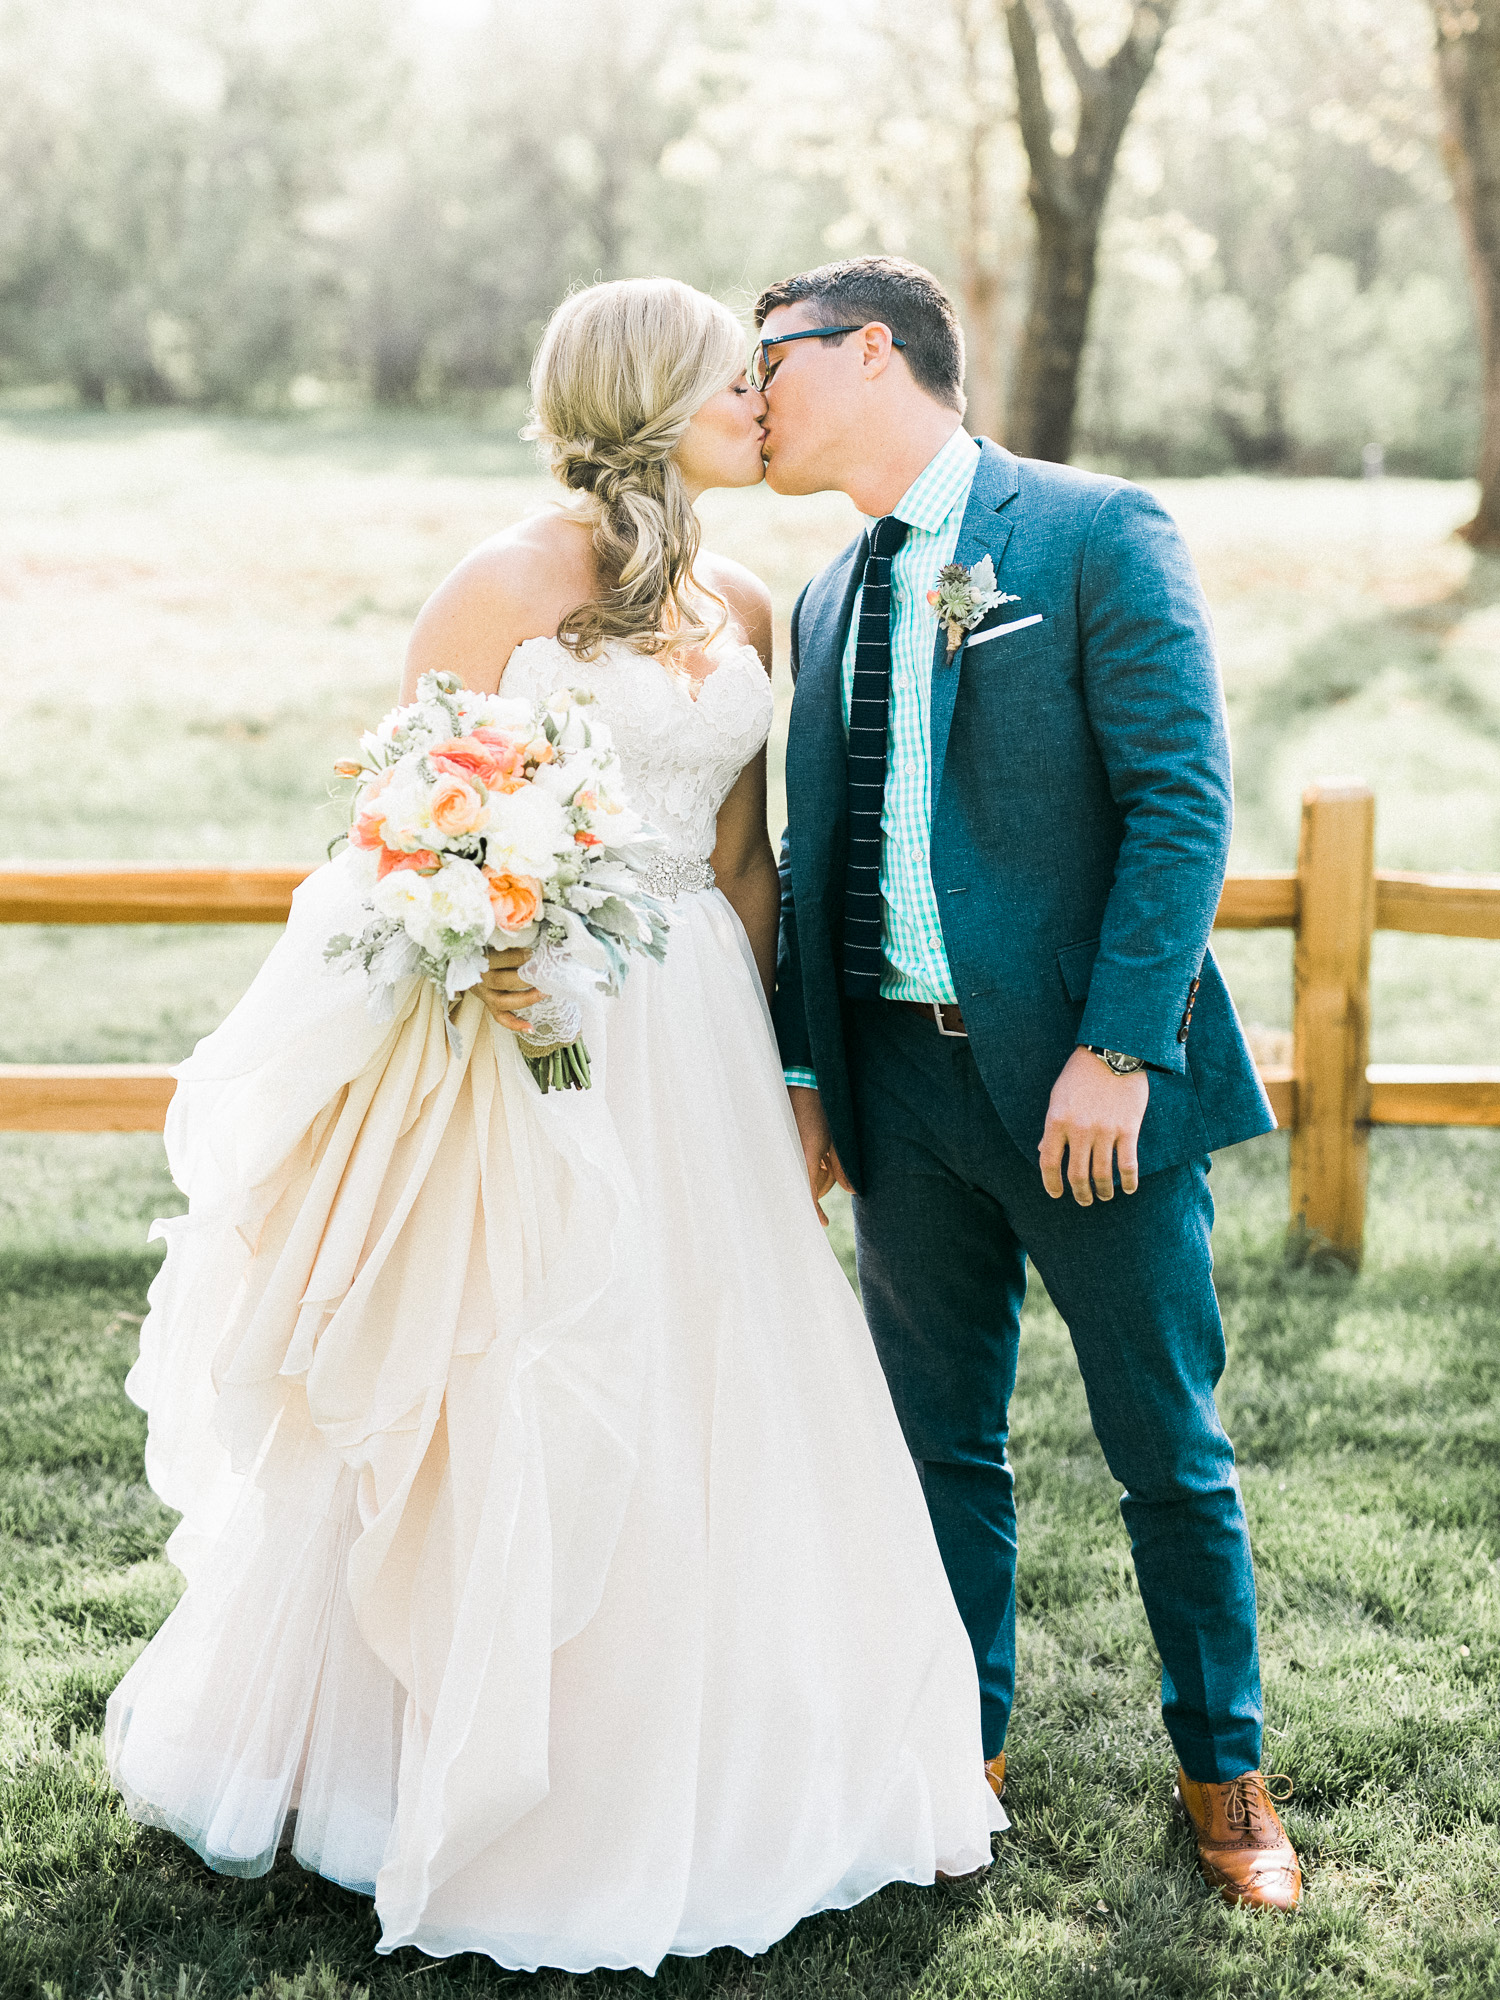 Chisolm_Springs_Wedding_OKC_Film_photographer-6.jpg